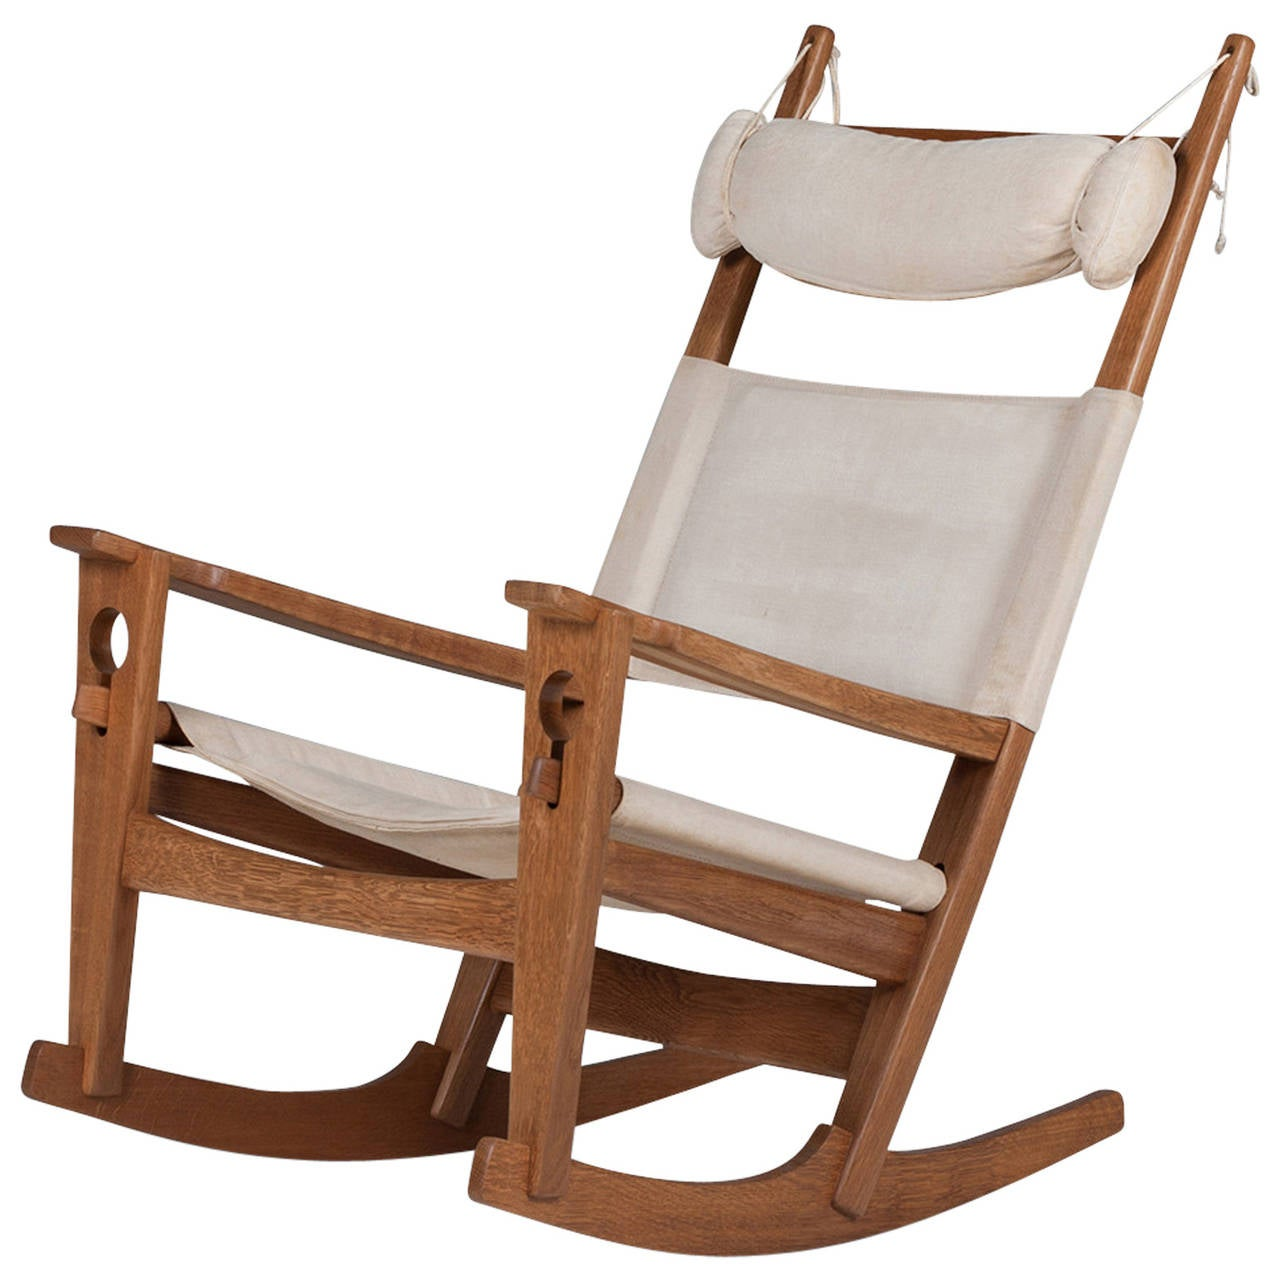 hans wegner rocking chair dining room covers for christmas vintage danish keyhole 675 by j